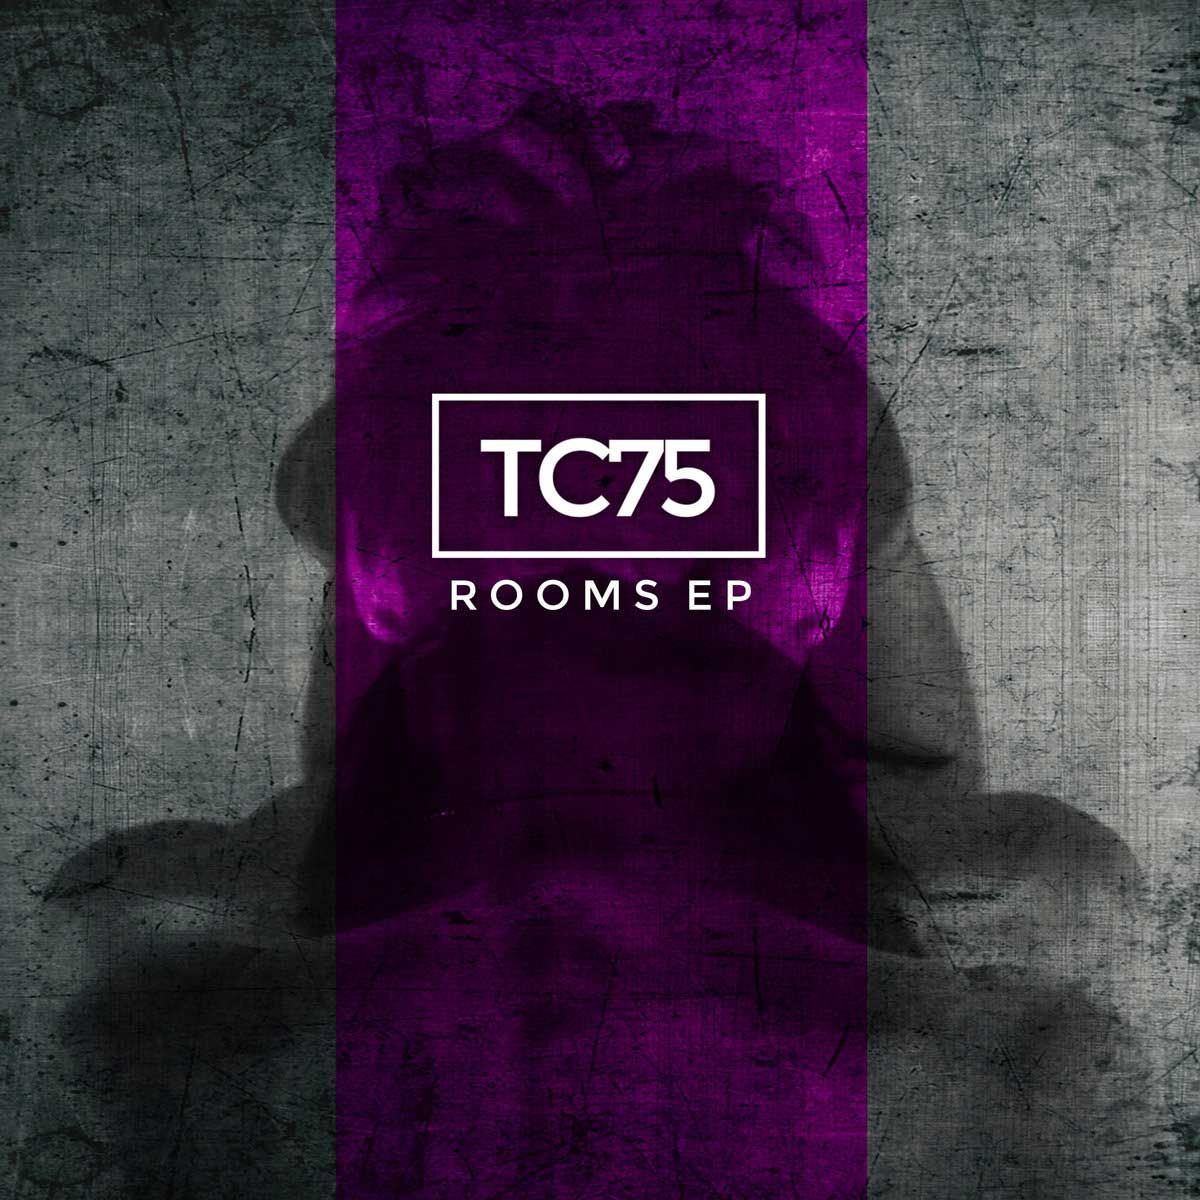 TC75 - Rooms (Extended) - TC75 - Rooms